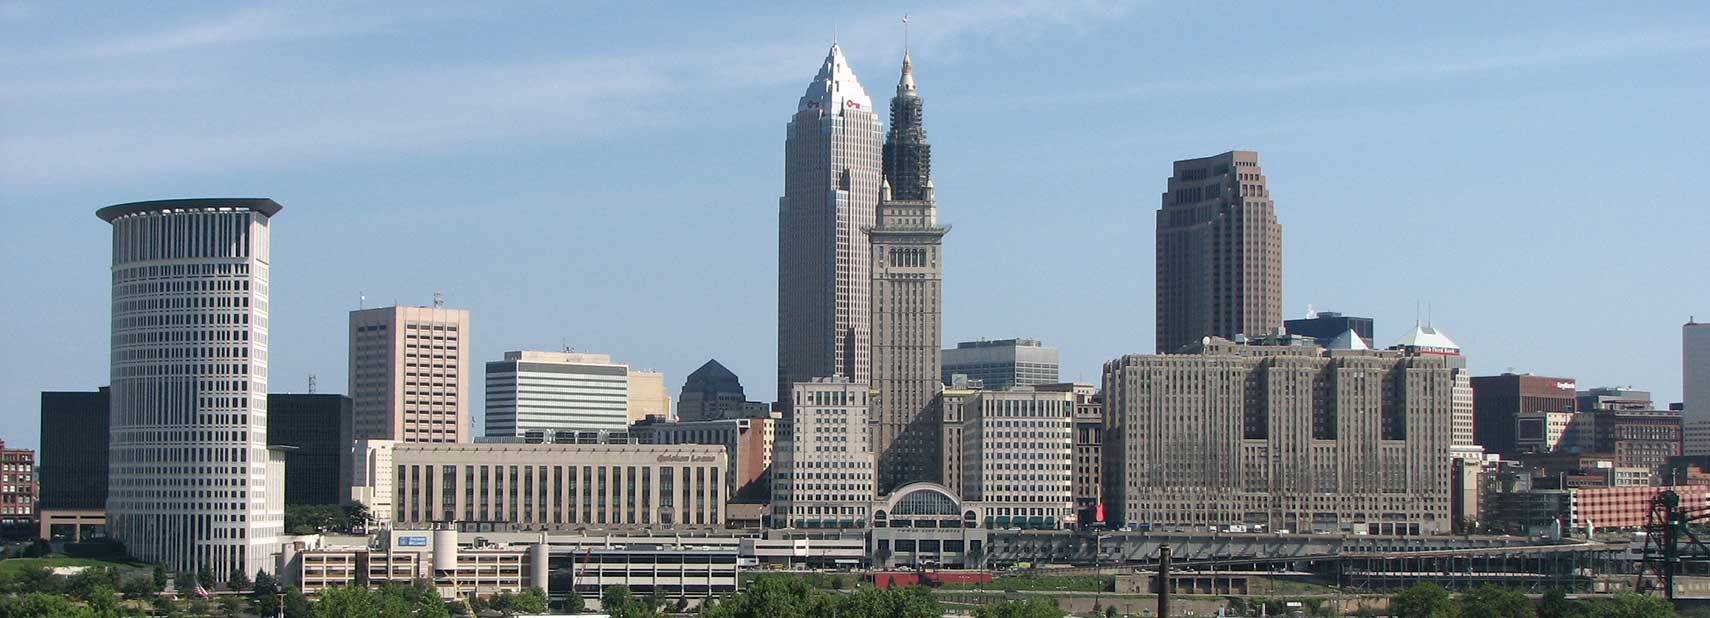 Google Map of Cleveland, Ohio, USA - Nations Online Project on